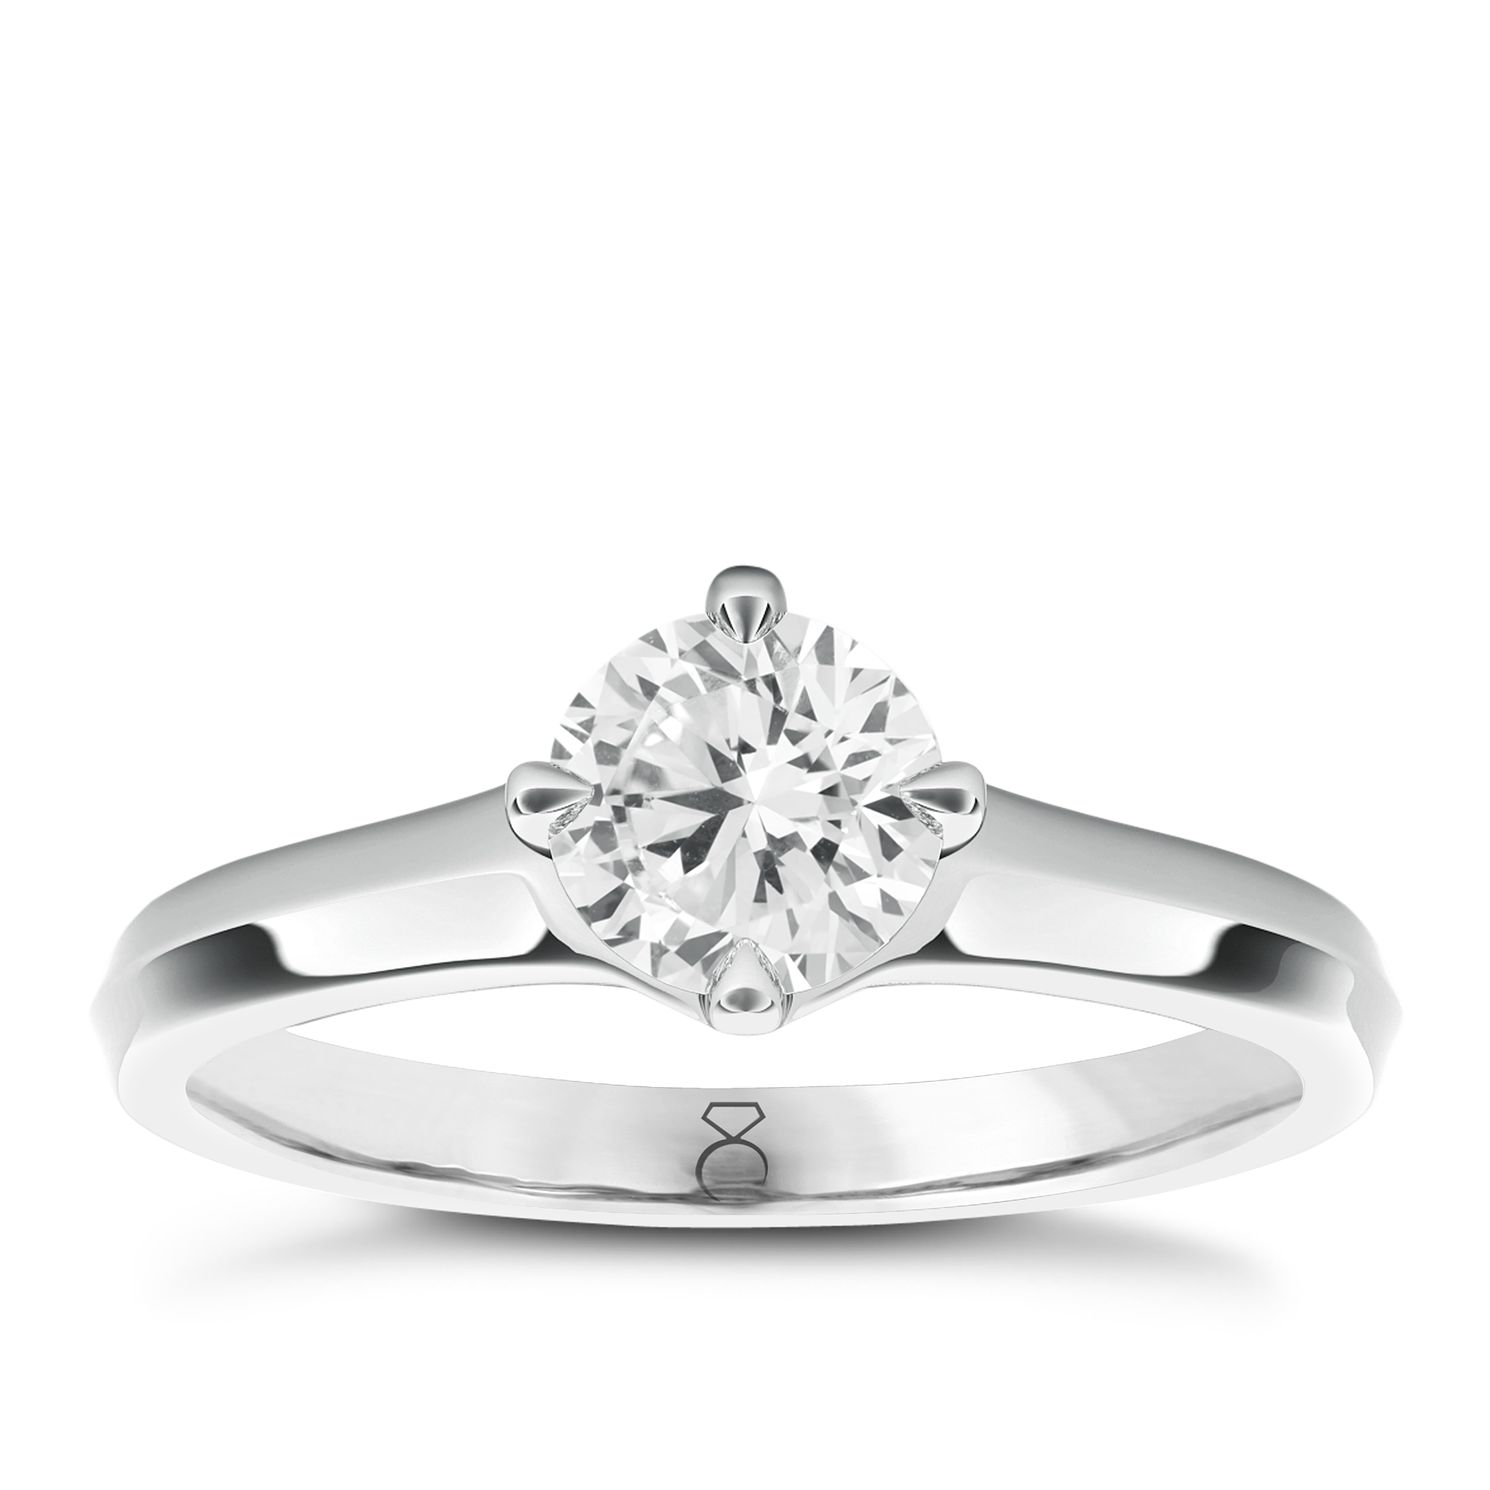 The Diamond Story 18ct White Gold 1/4ct Diamond Ring - Product number 5417643